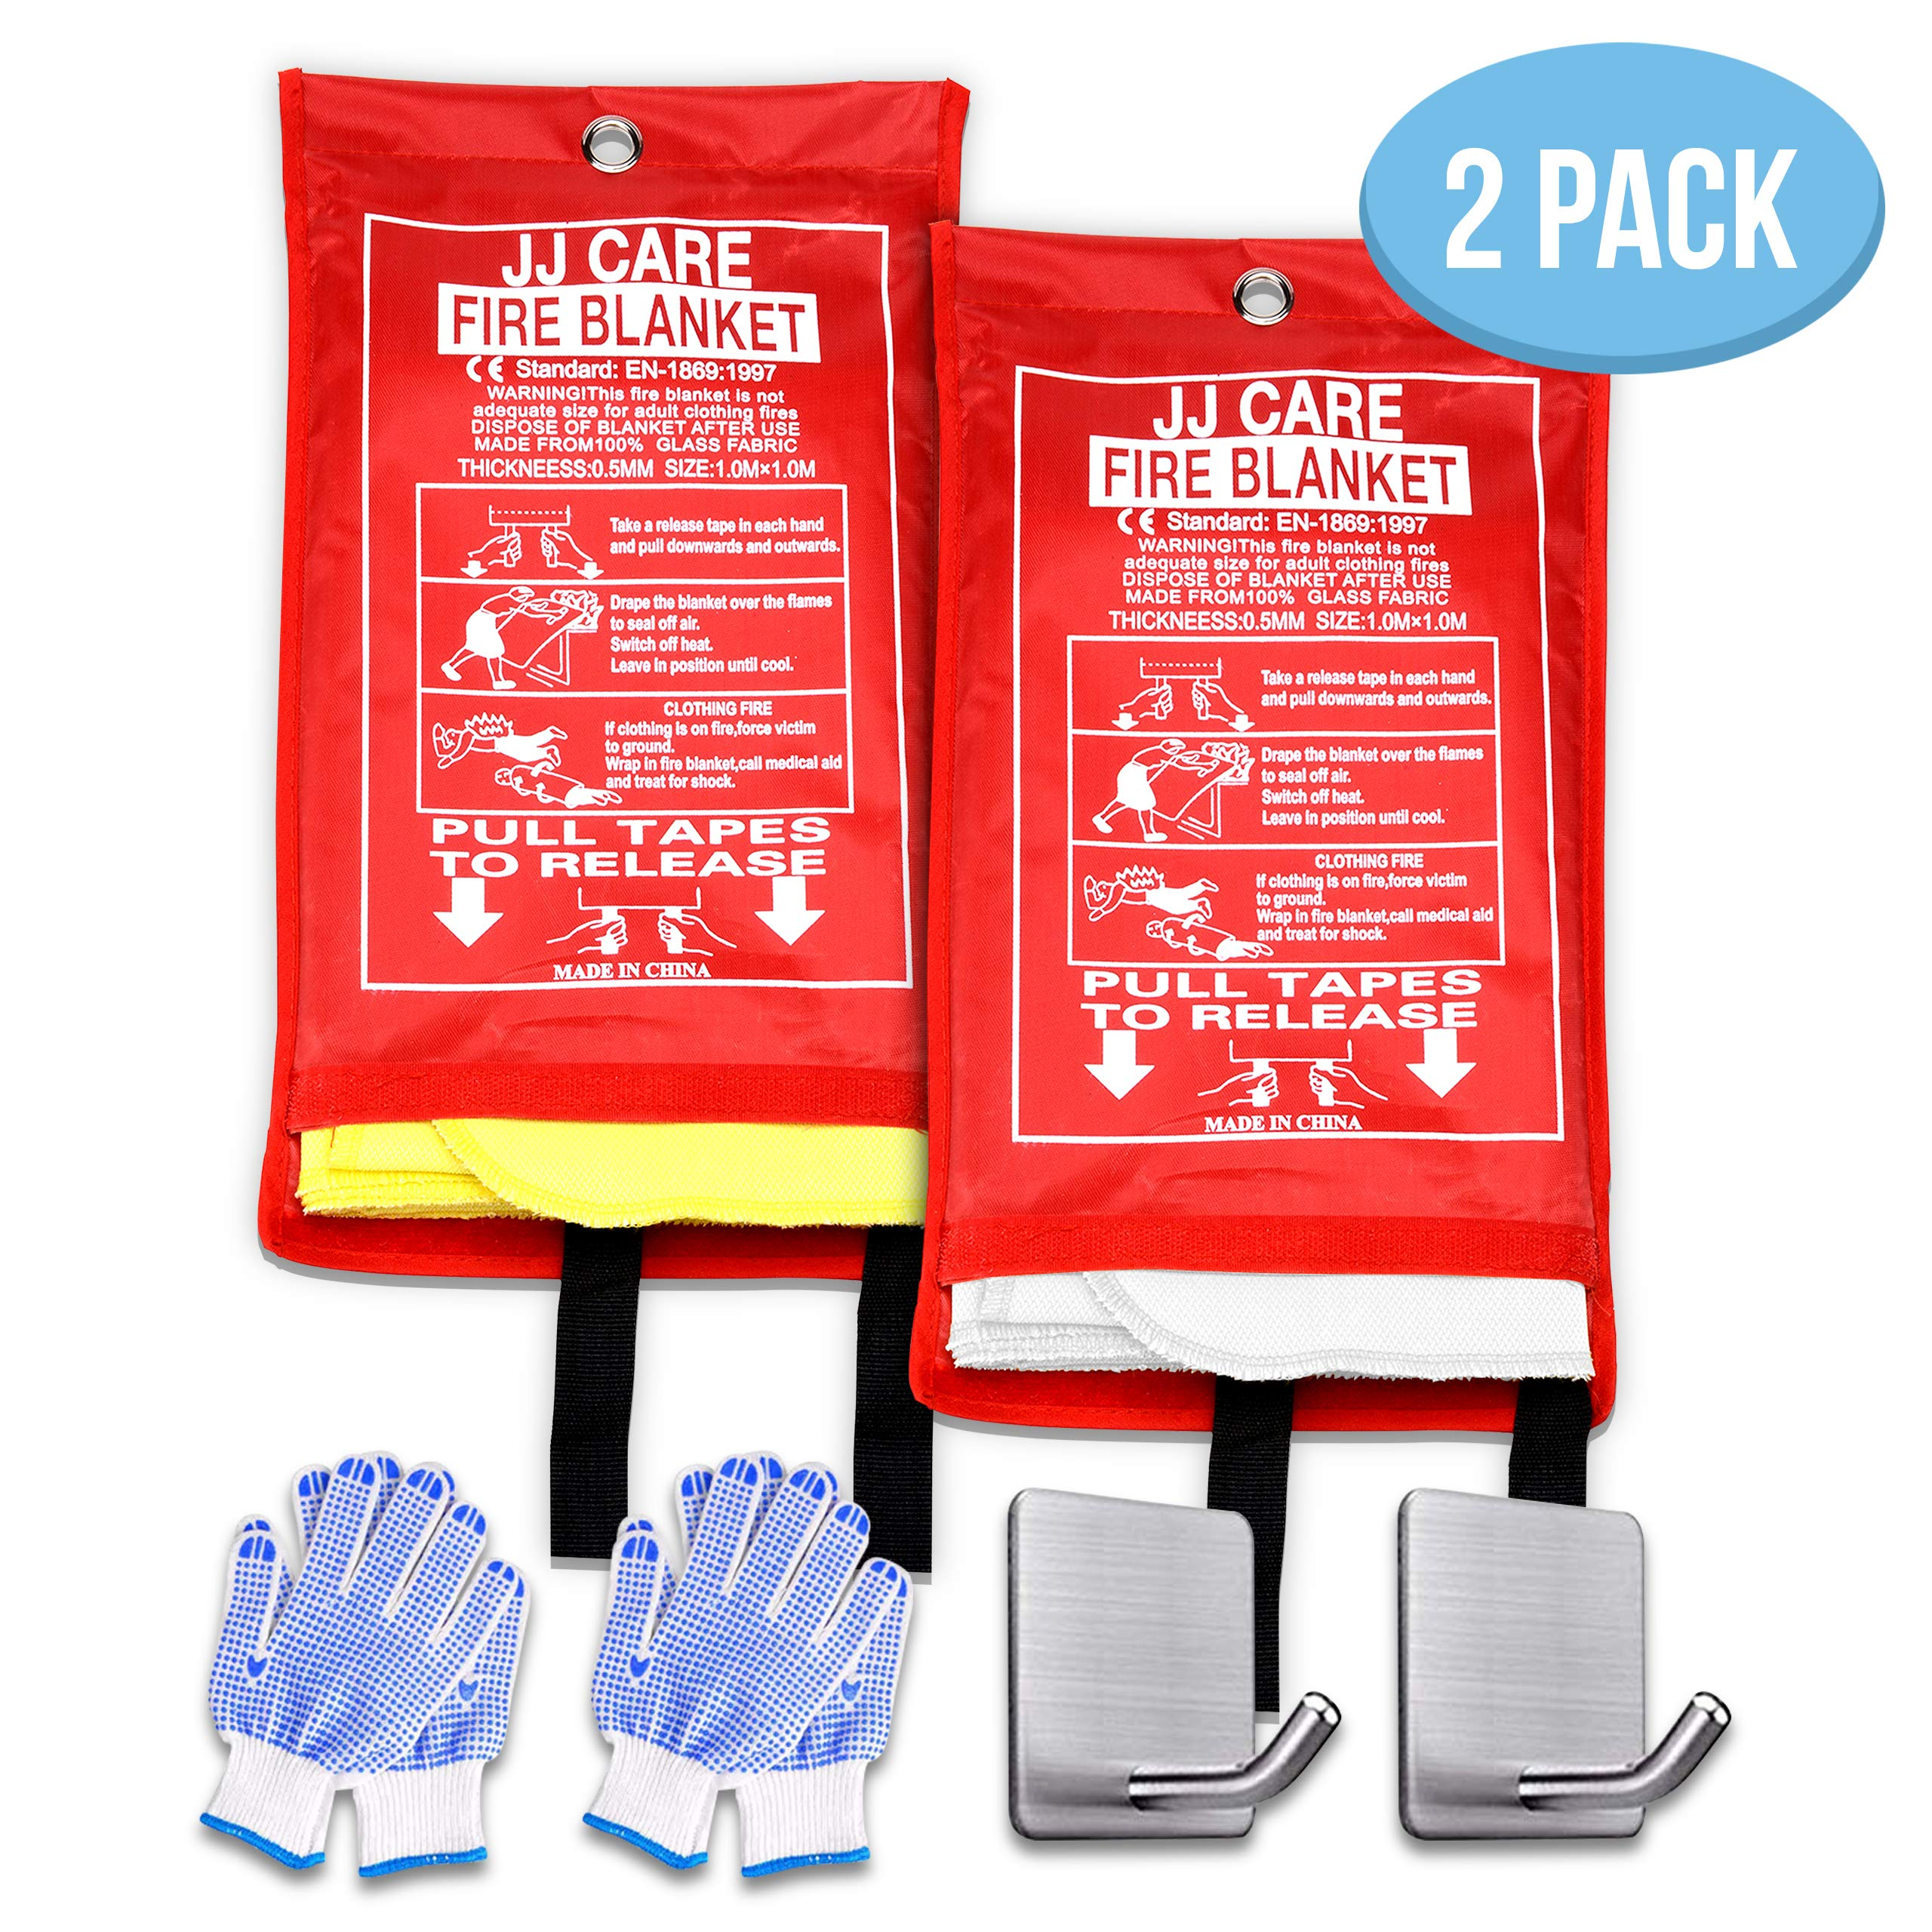 """JJ CARE Fire Blanket (Upgraded) Fire Suppression Fire Fighting Blanket Silica Cloth(40""""x40"""")Flame Retardant fire safety blanket Emergency Survival kit with hooks & grip for Camping Kitchen & warehouse"""